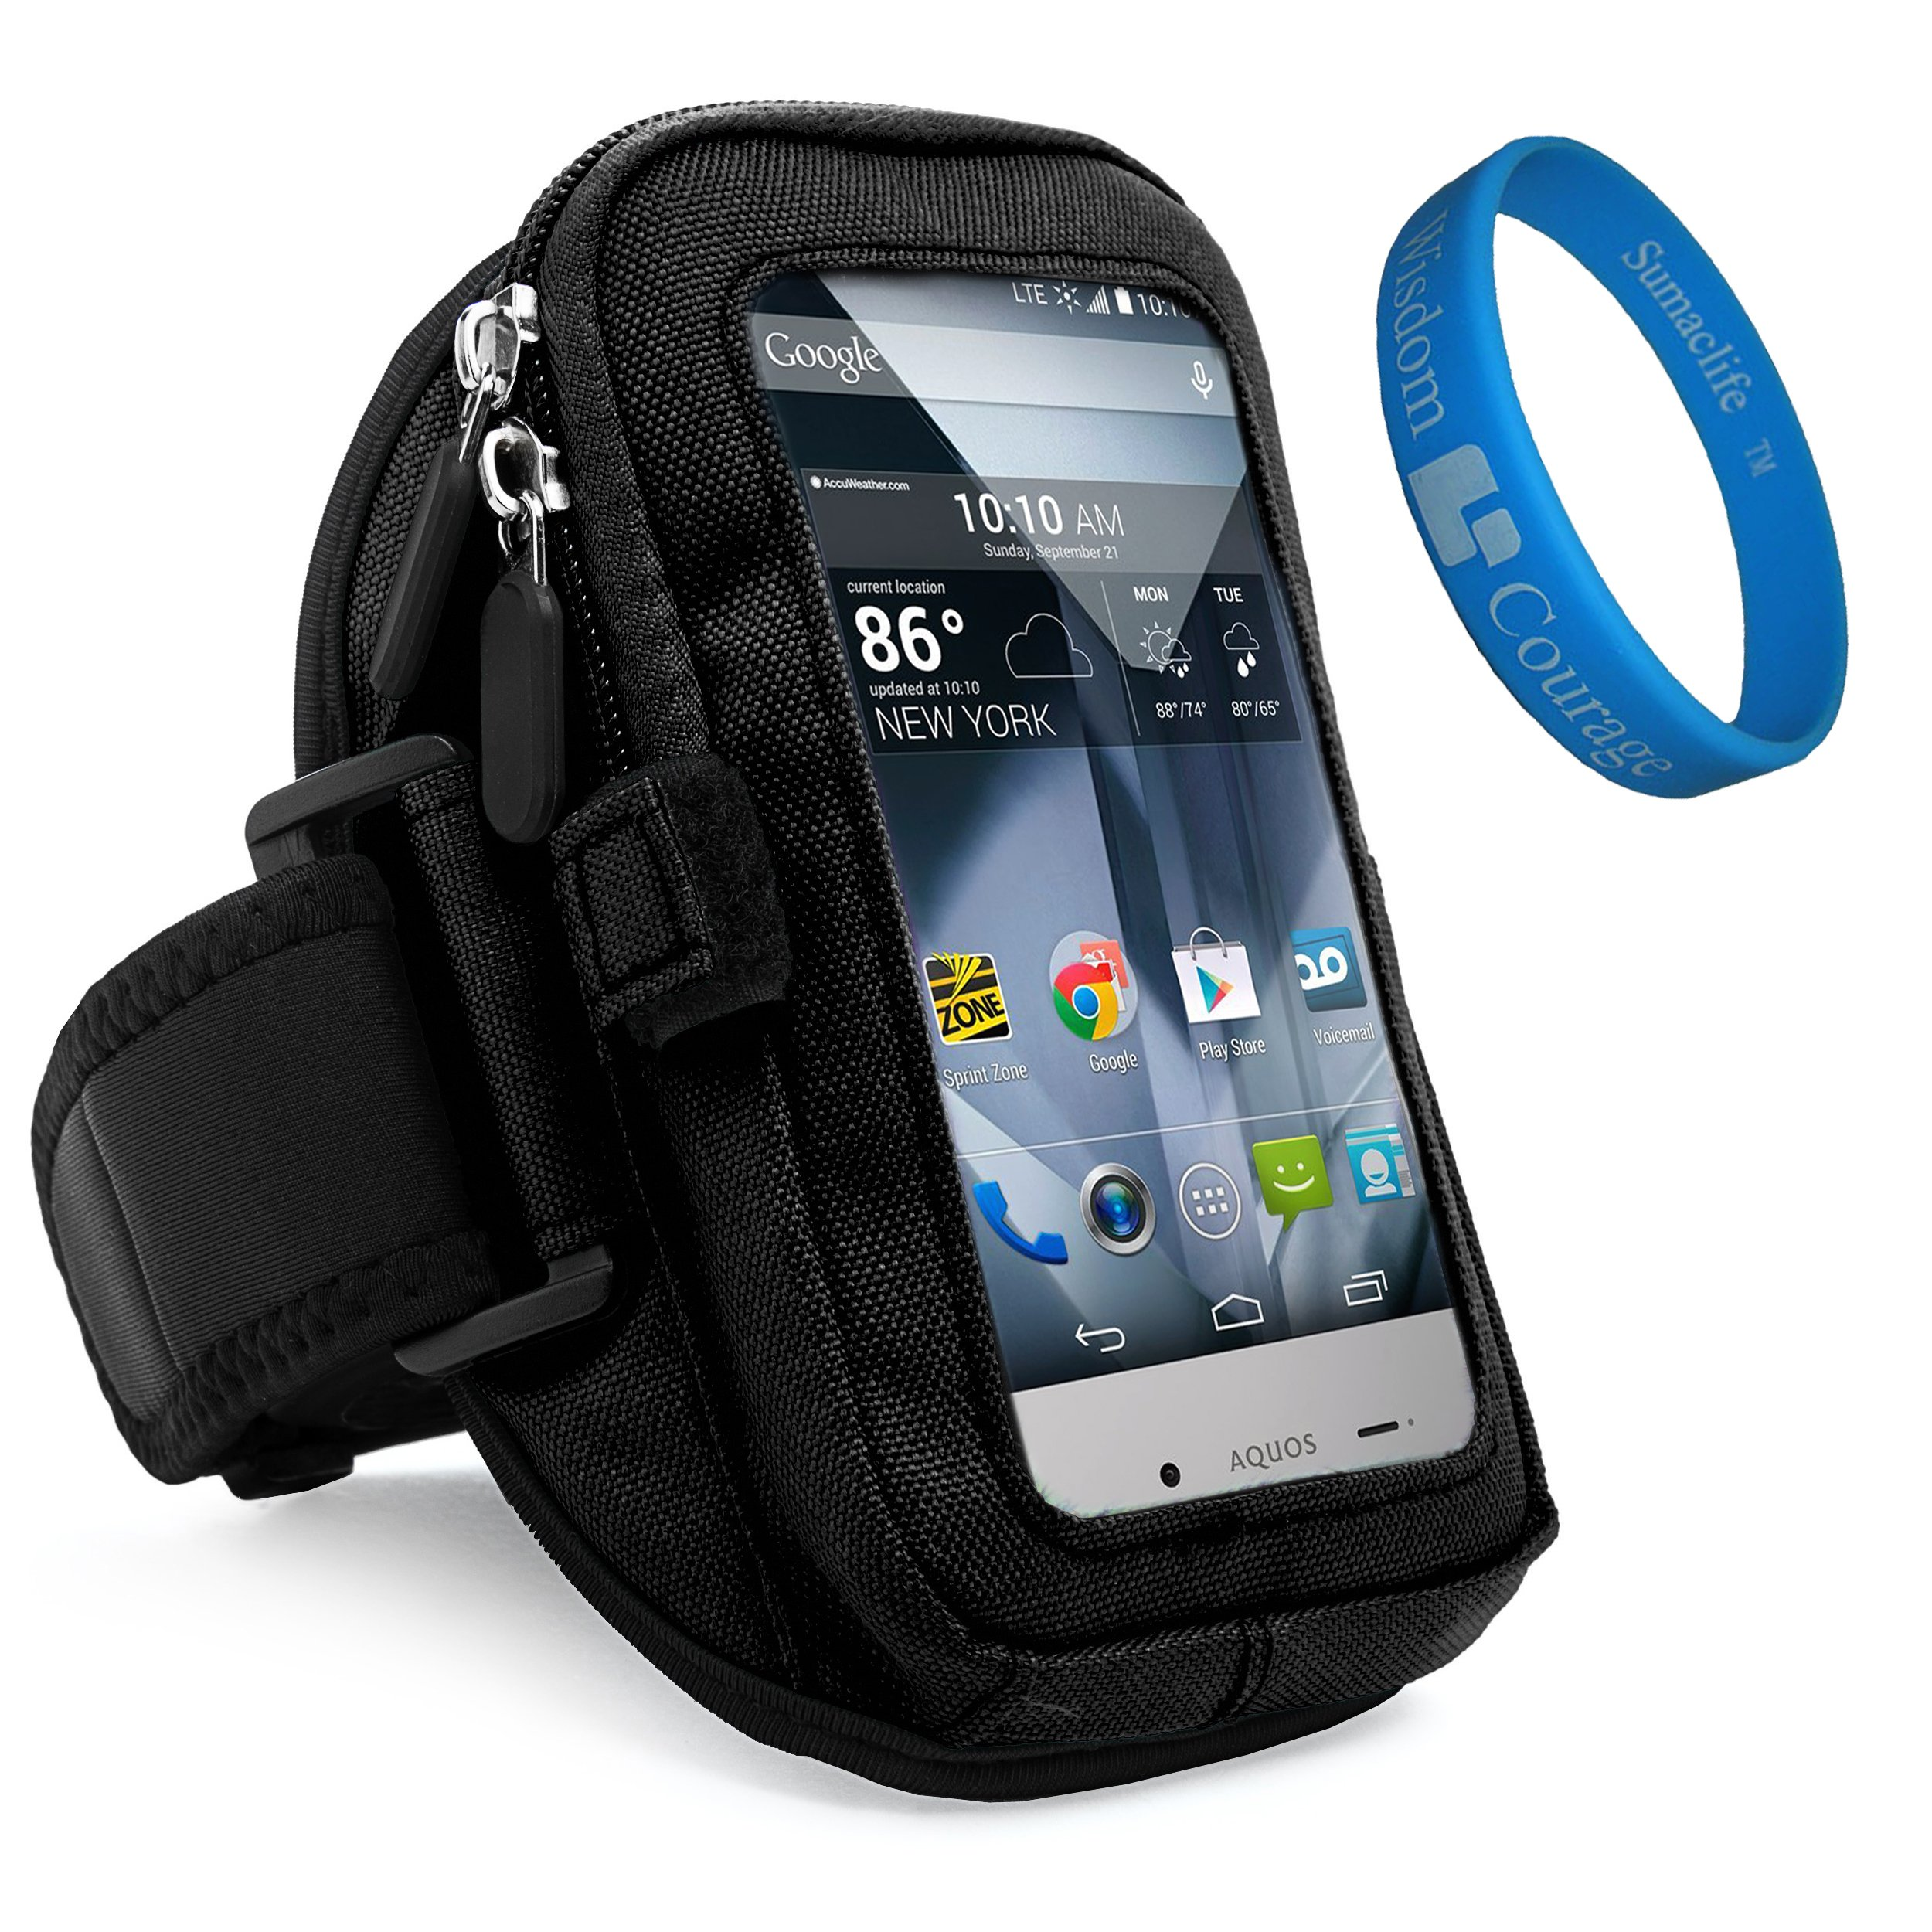 Universal Zippered Sport Gym Running Jogging Exercise Armband w/card & key slot for Sharp Aquos Crystal/X Fit 5'' to 5.5 inch Google Android Smart Phone + SumacLife Wisdom Courage Wristband (Black)